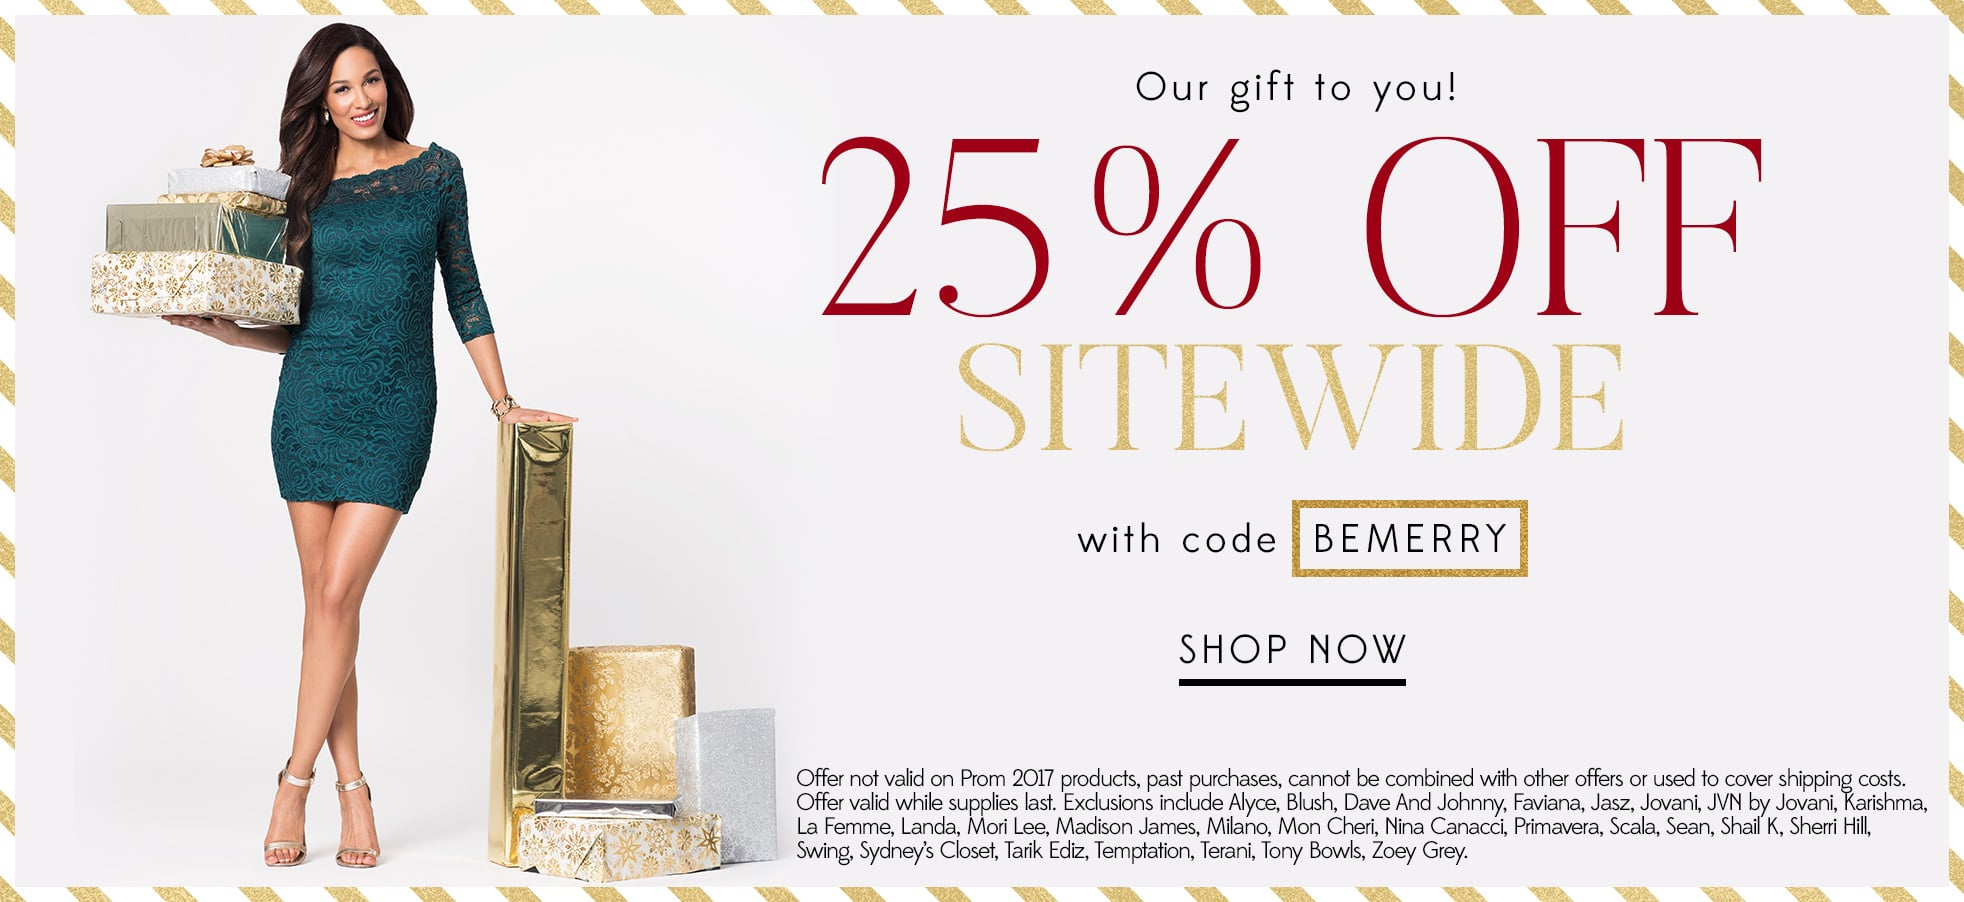 25% Off Sitewide with code BEMERRY